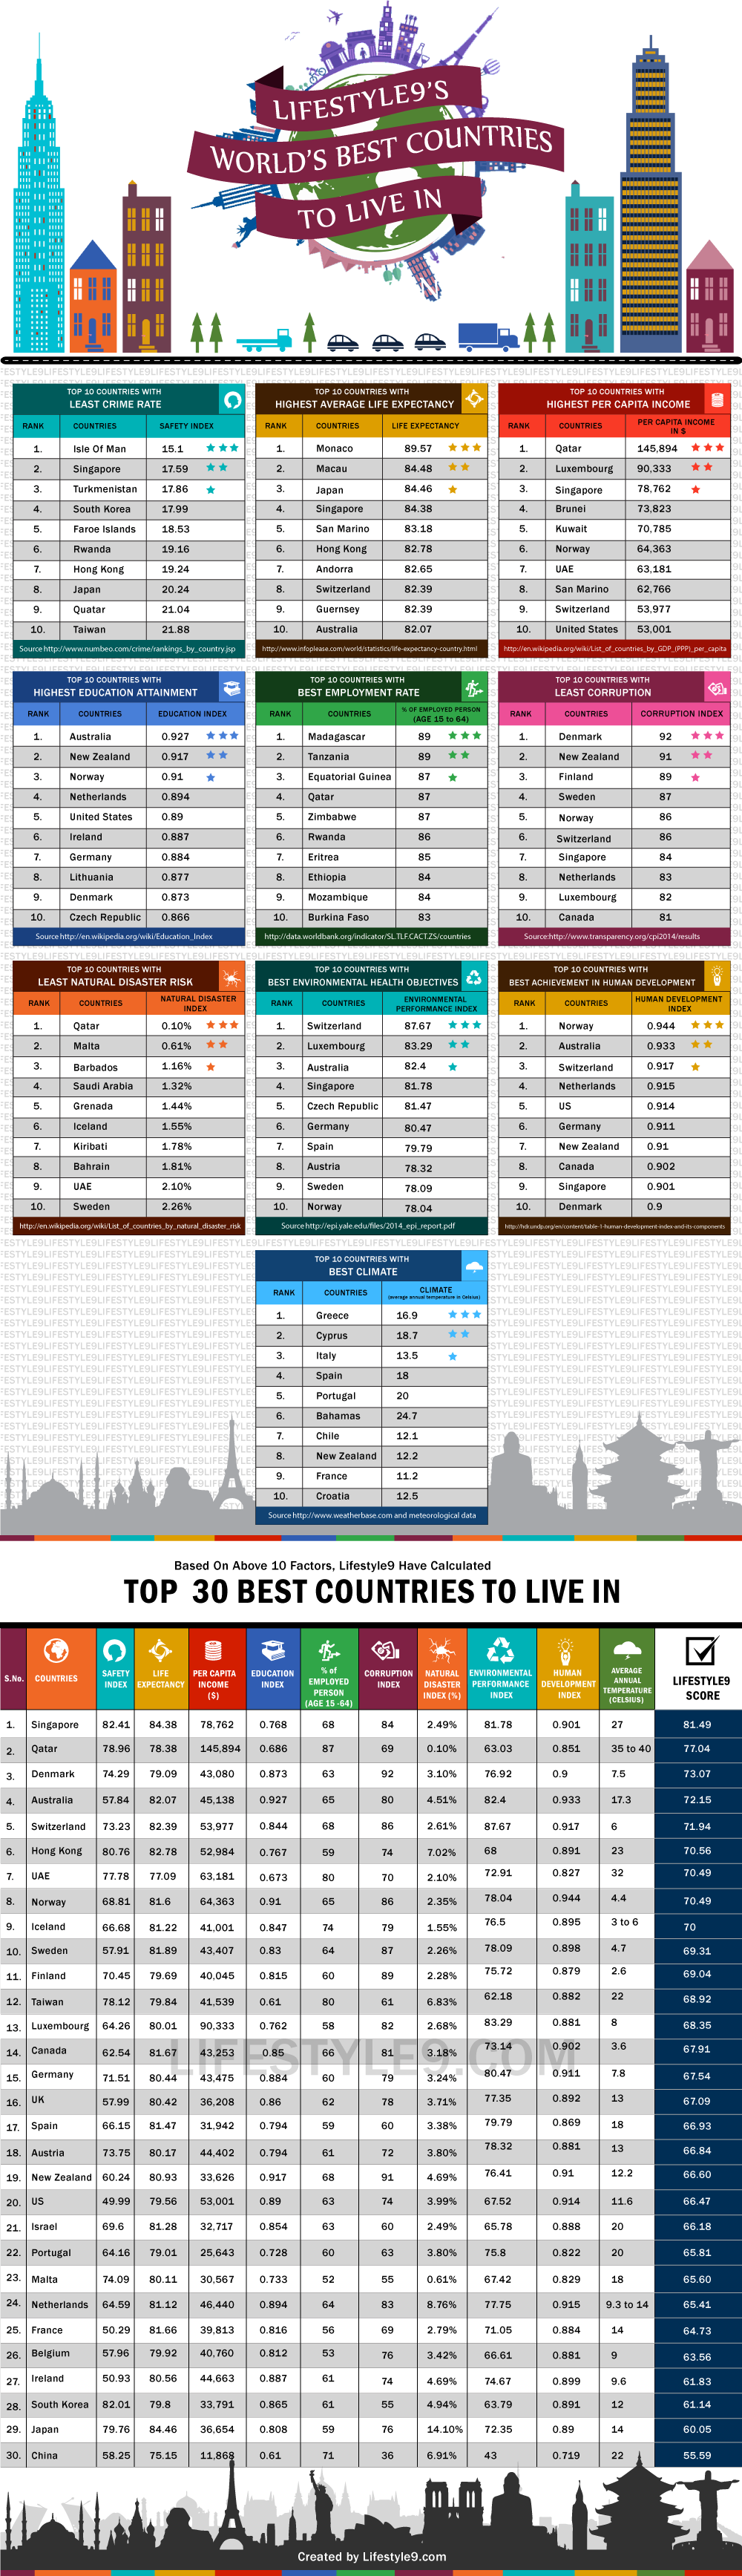 Best Country To Live In The World Want To See The World And Know Someone Looking To Make A Hire Contact Me Cool Countries Best Places To Live Moving Overseas